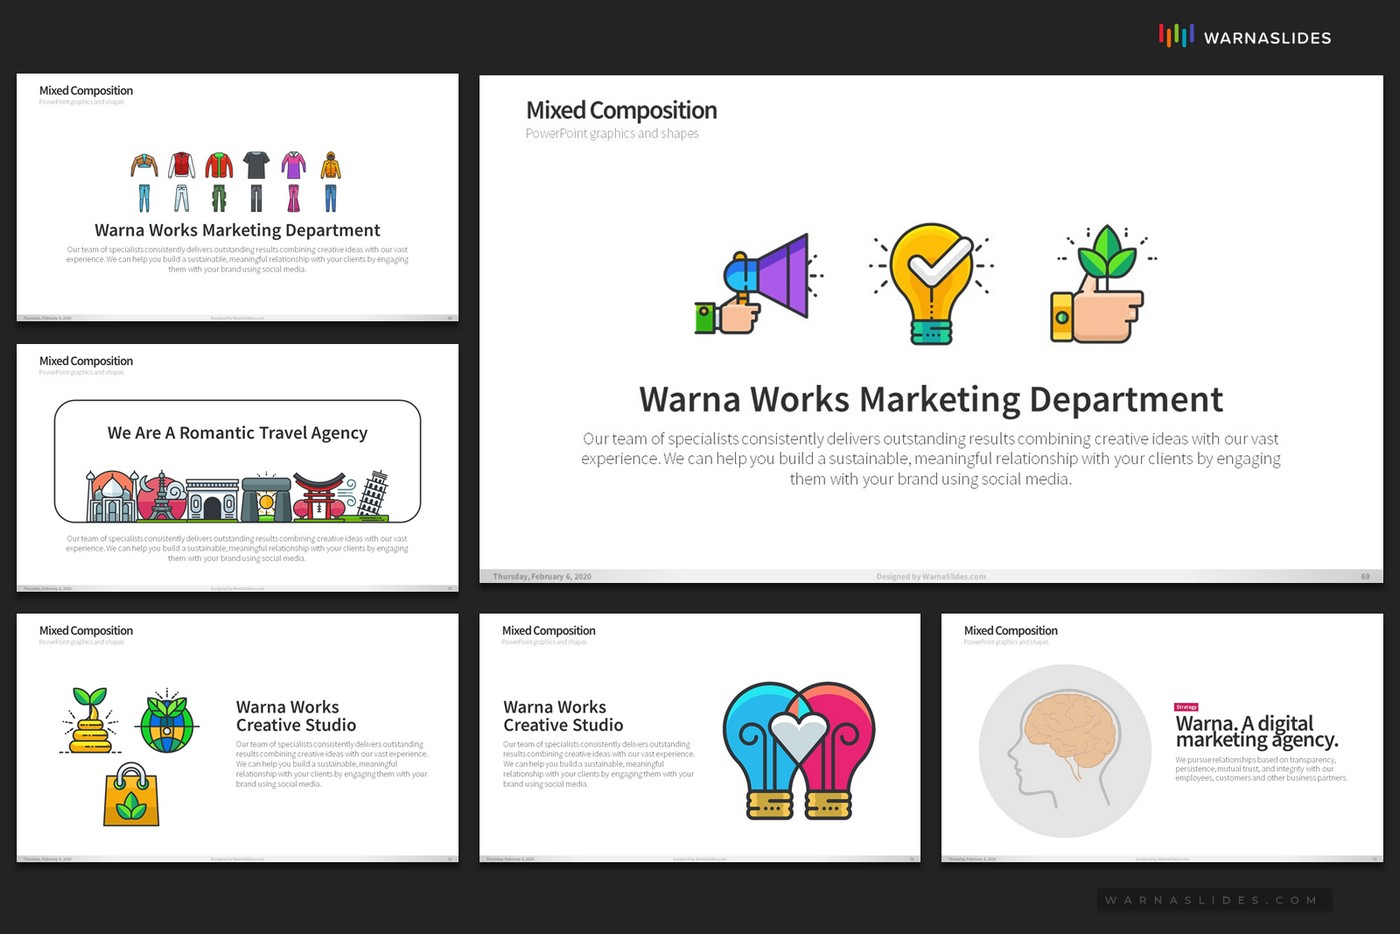 Social-Media-Graphics-Digital-Marketing-PowerPoint-Template-for-Business-Pitch-Deck-Professional-Creative-PowerPoint-Icons-014